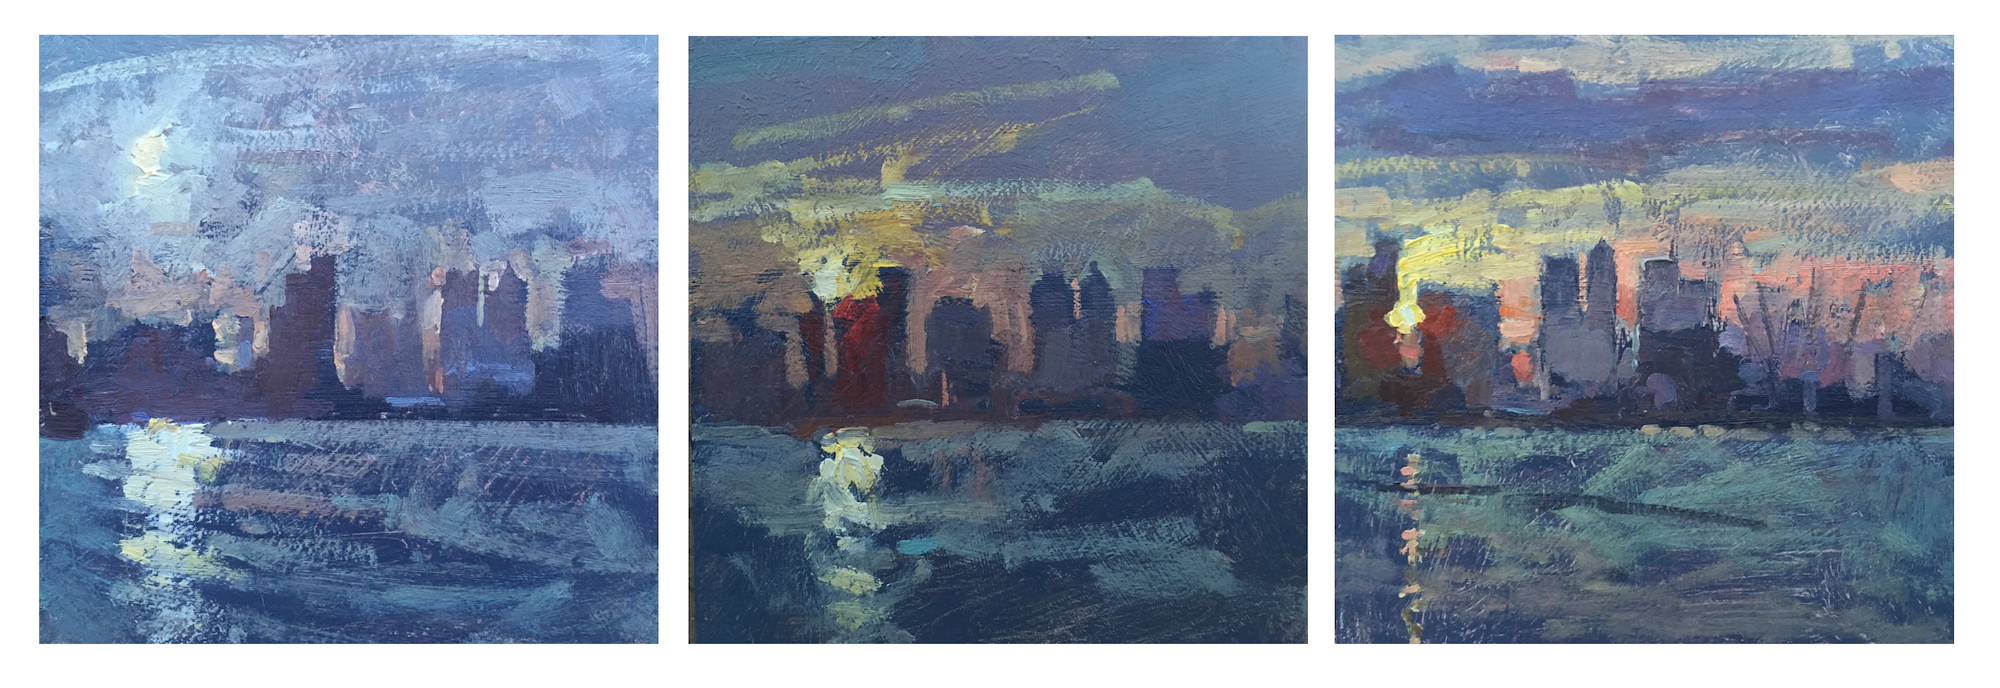 Canary Wharf Sunset Series Benjamin Hope Oil on board, 3 x [15 x 15 cm], 2017